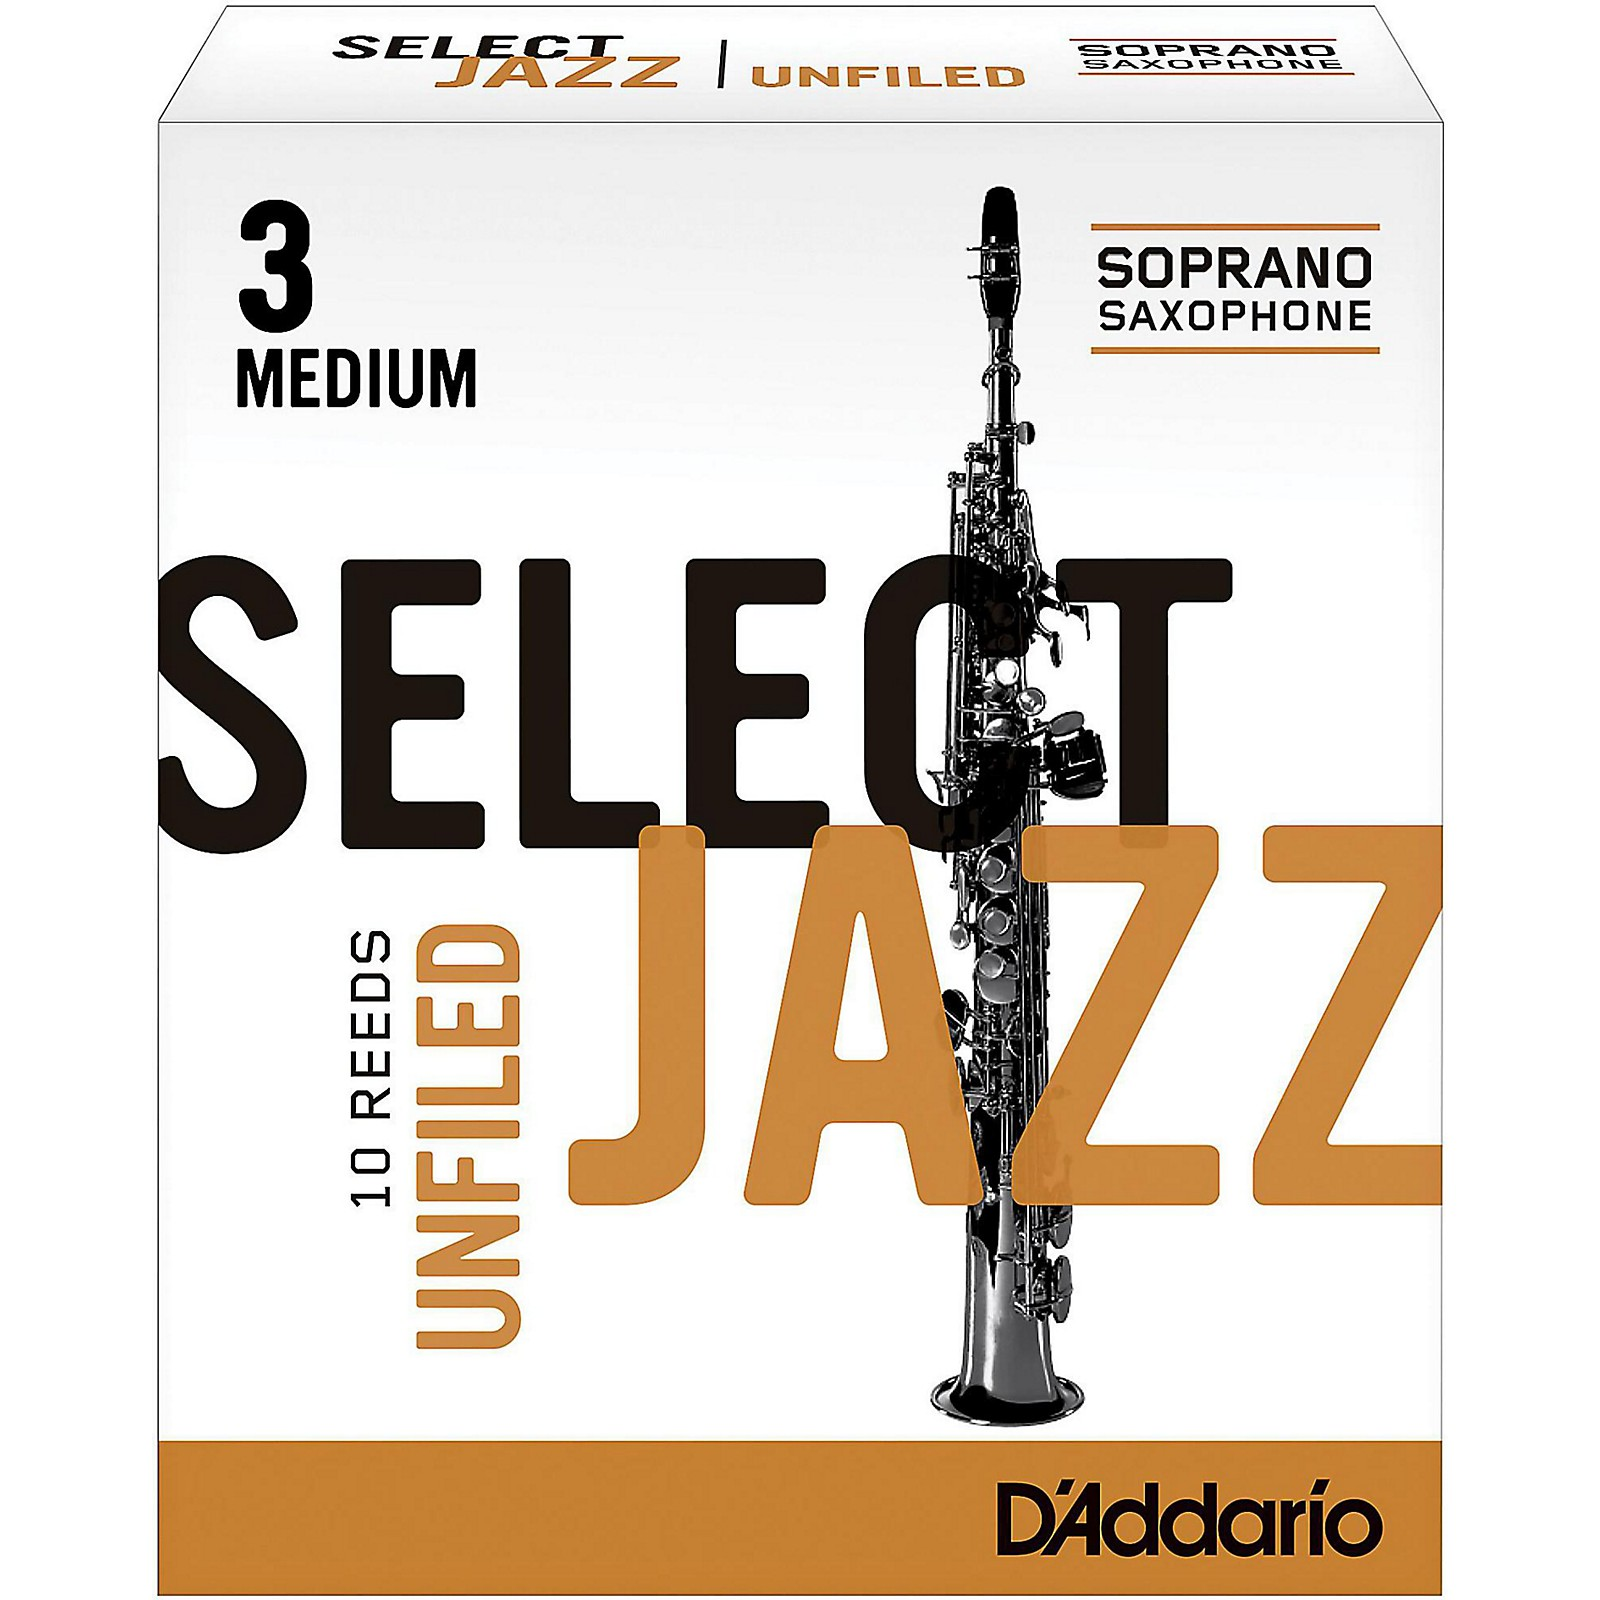 D'Addario Woodwinds Select Jazz Unfiled Soprano Saxophone Reeds